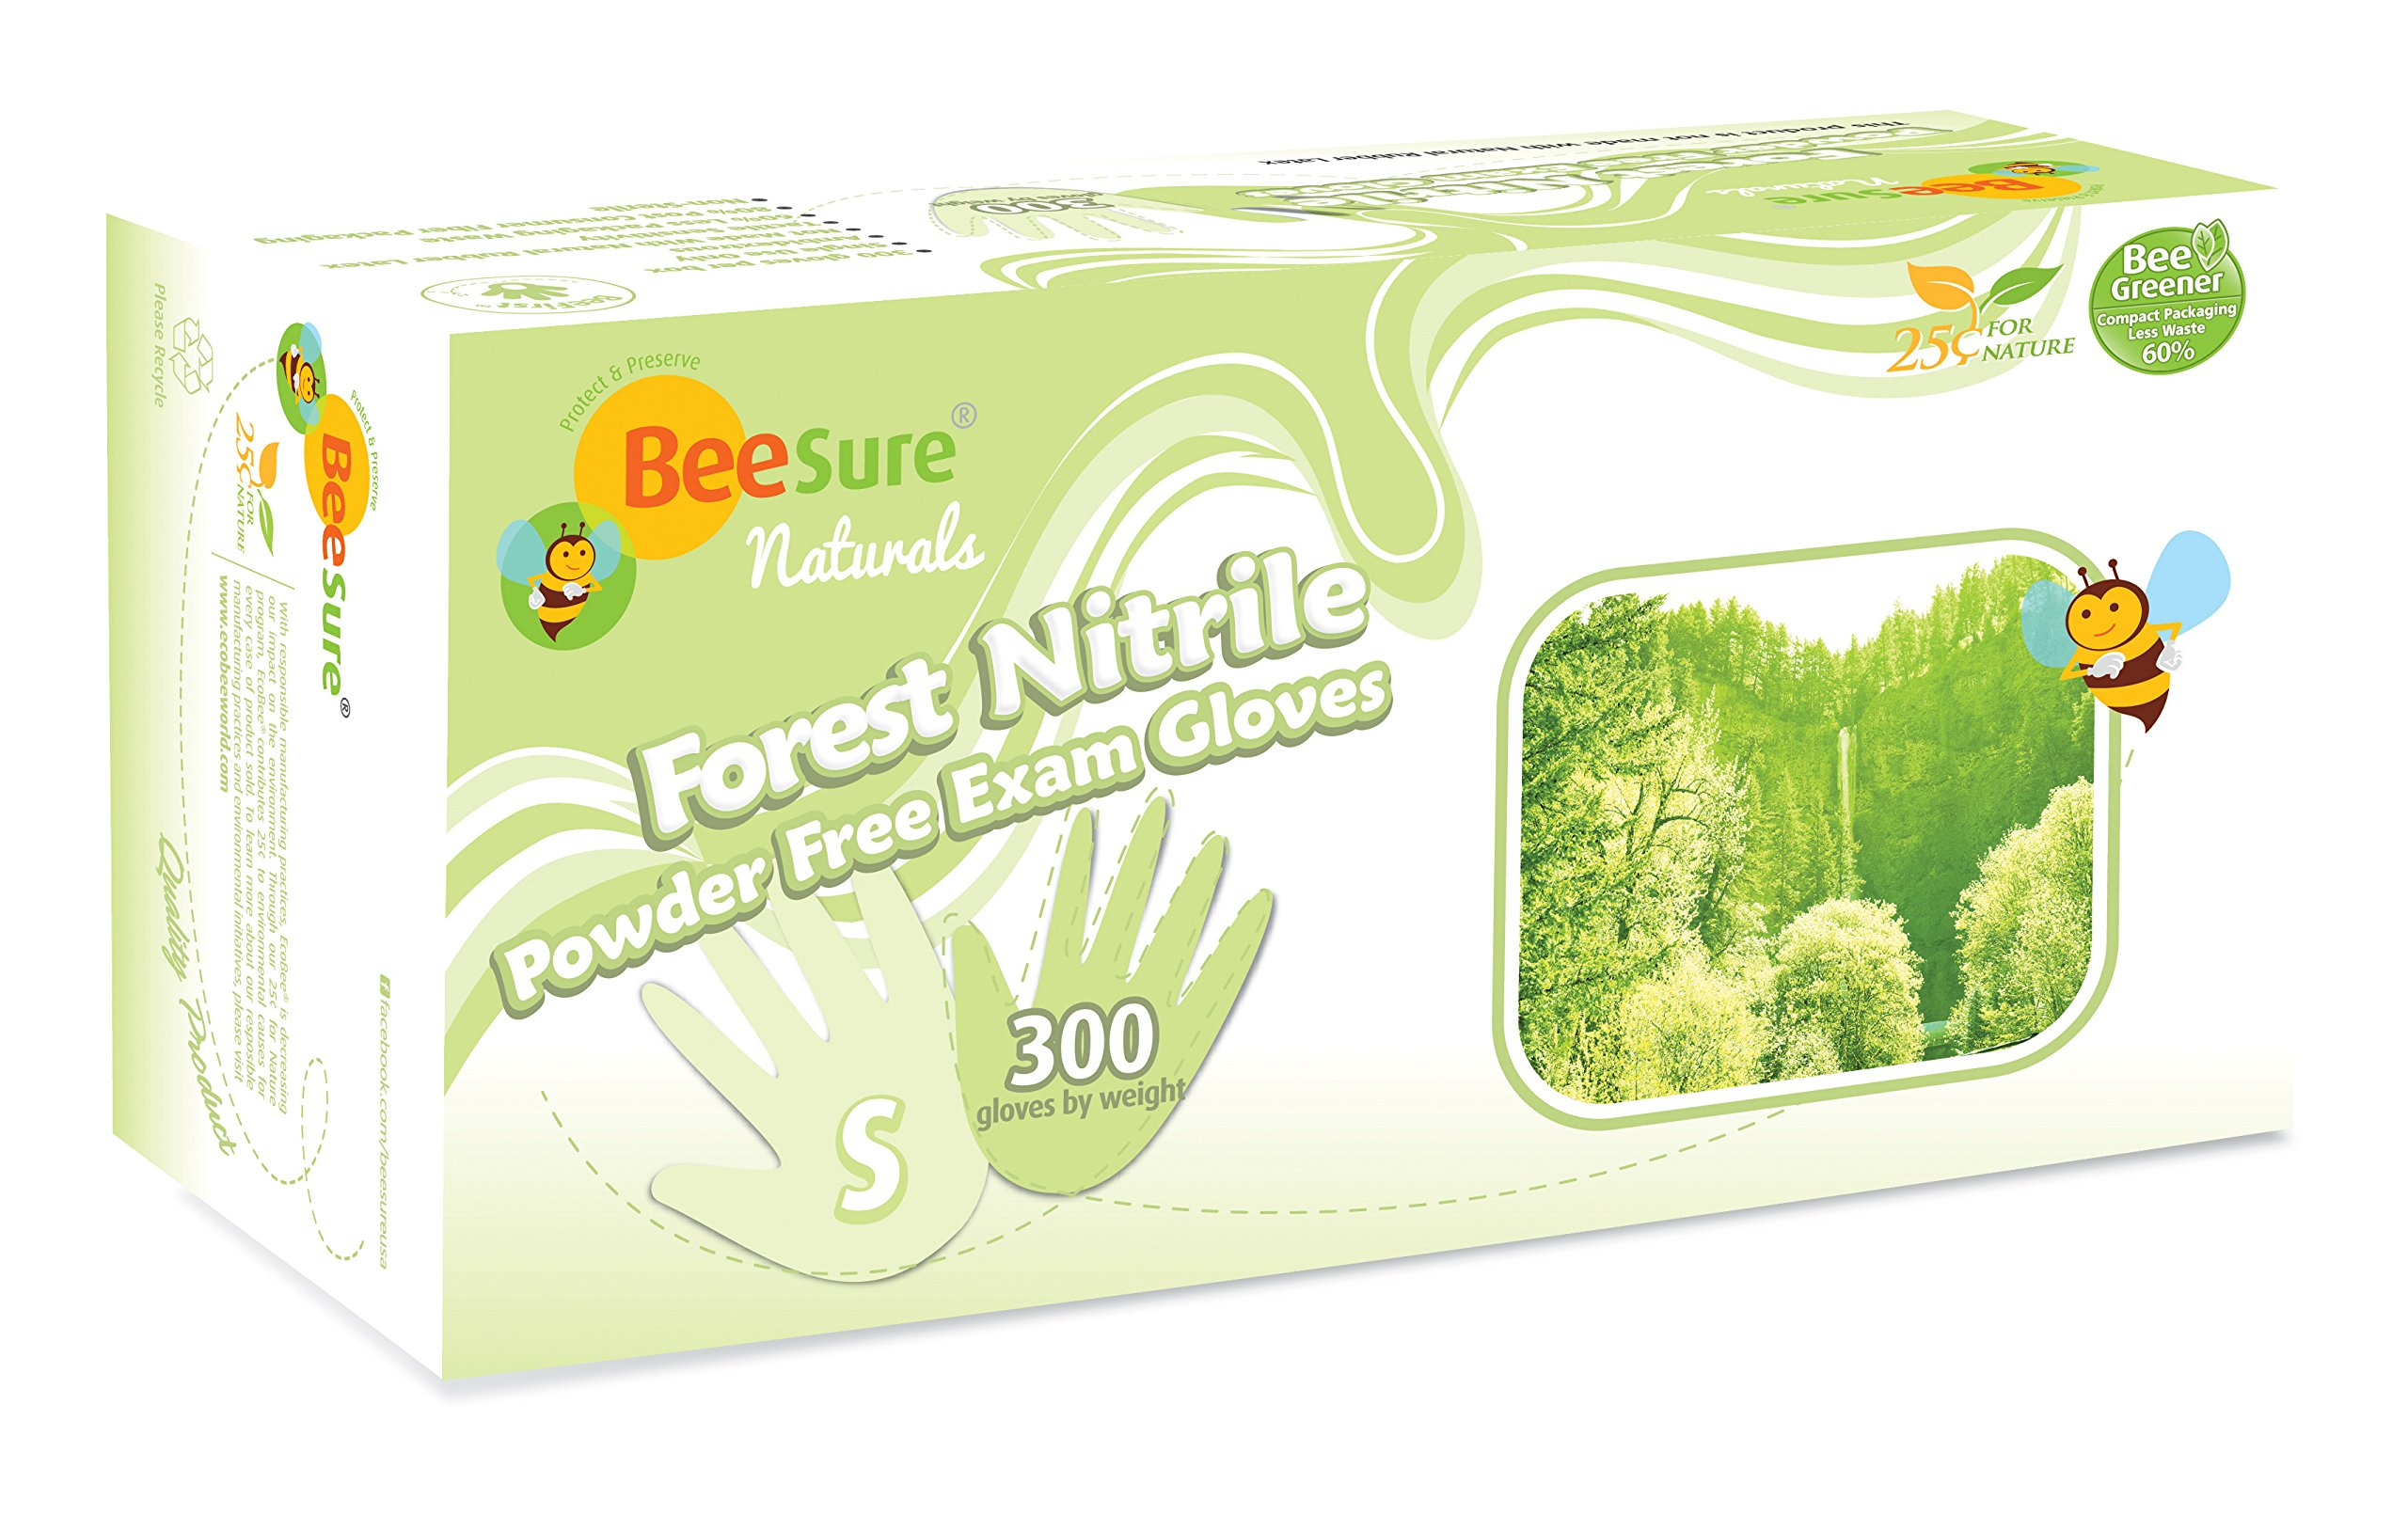 BeeSure BE2946 Naturals Forest Nitrile Powder Free Exam Gloves, 3 mil, Small, Nitrile, Beaded-Cuff (Pack of 300)